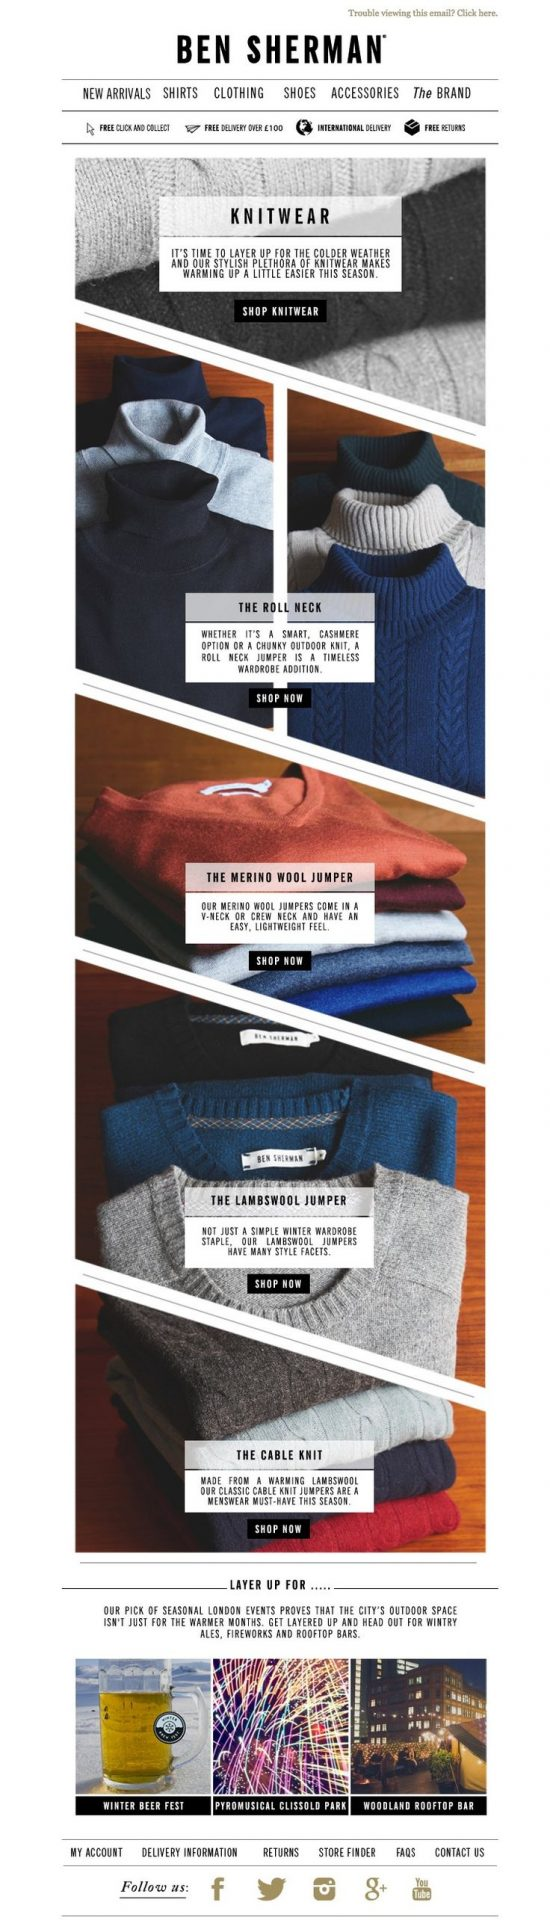 22 Excellent eCommerce Email Templates Examples to Inspire ...